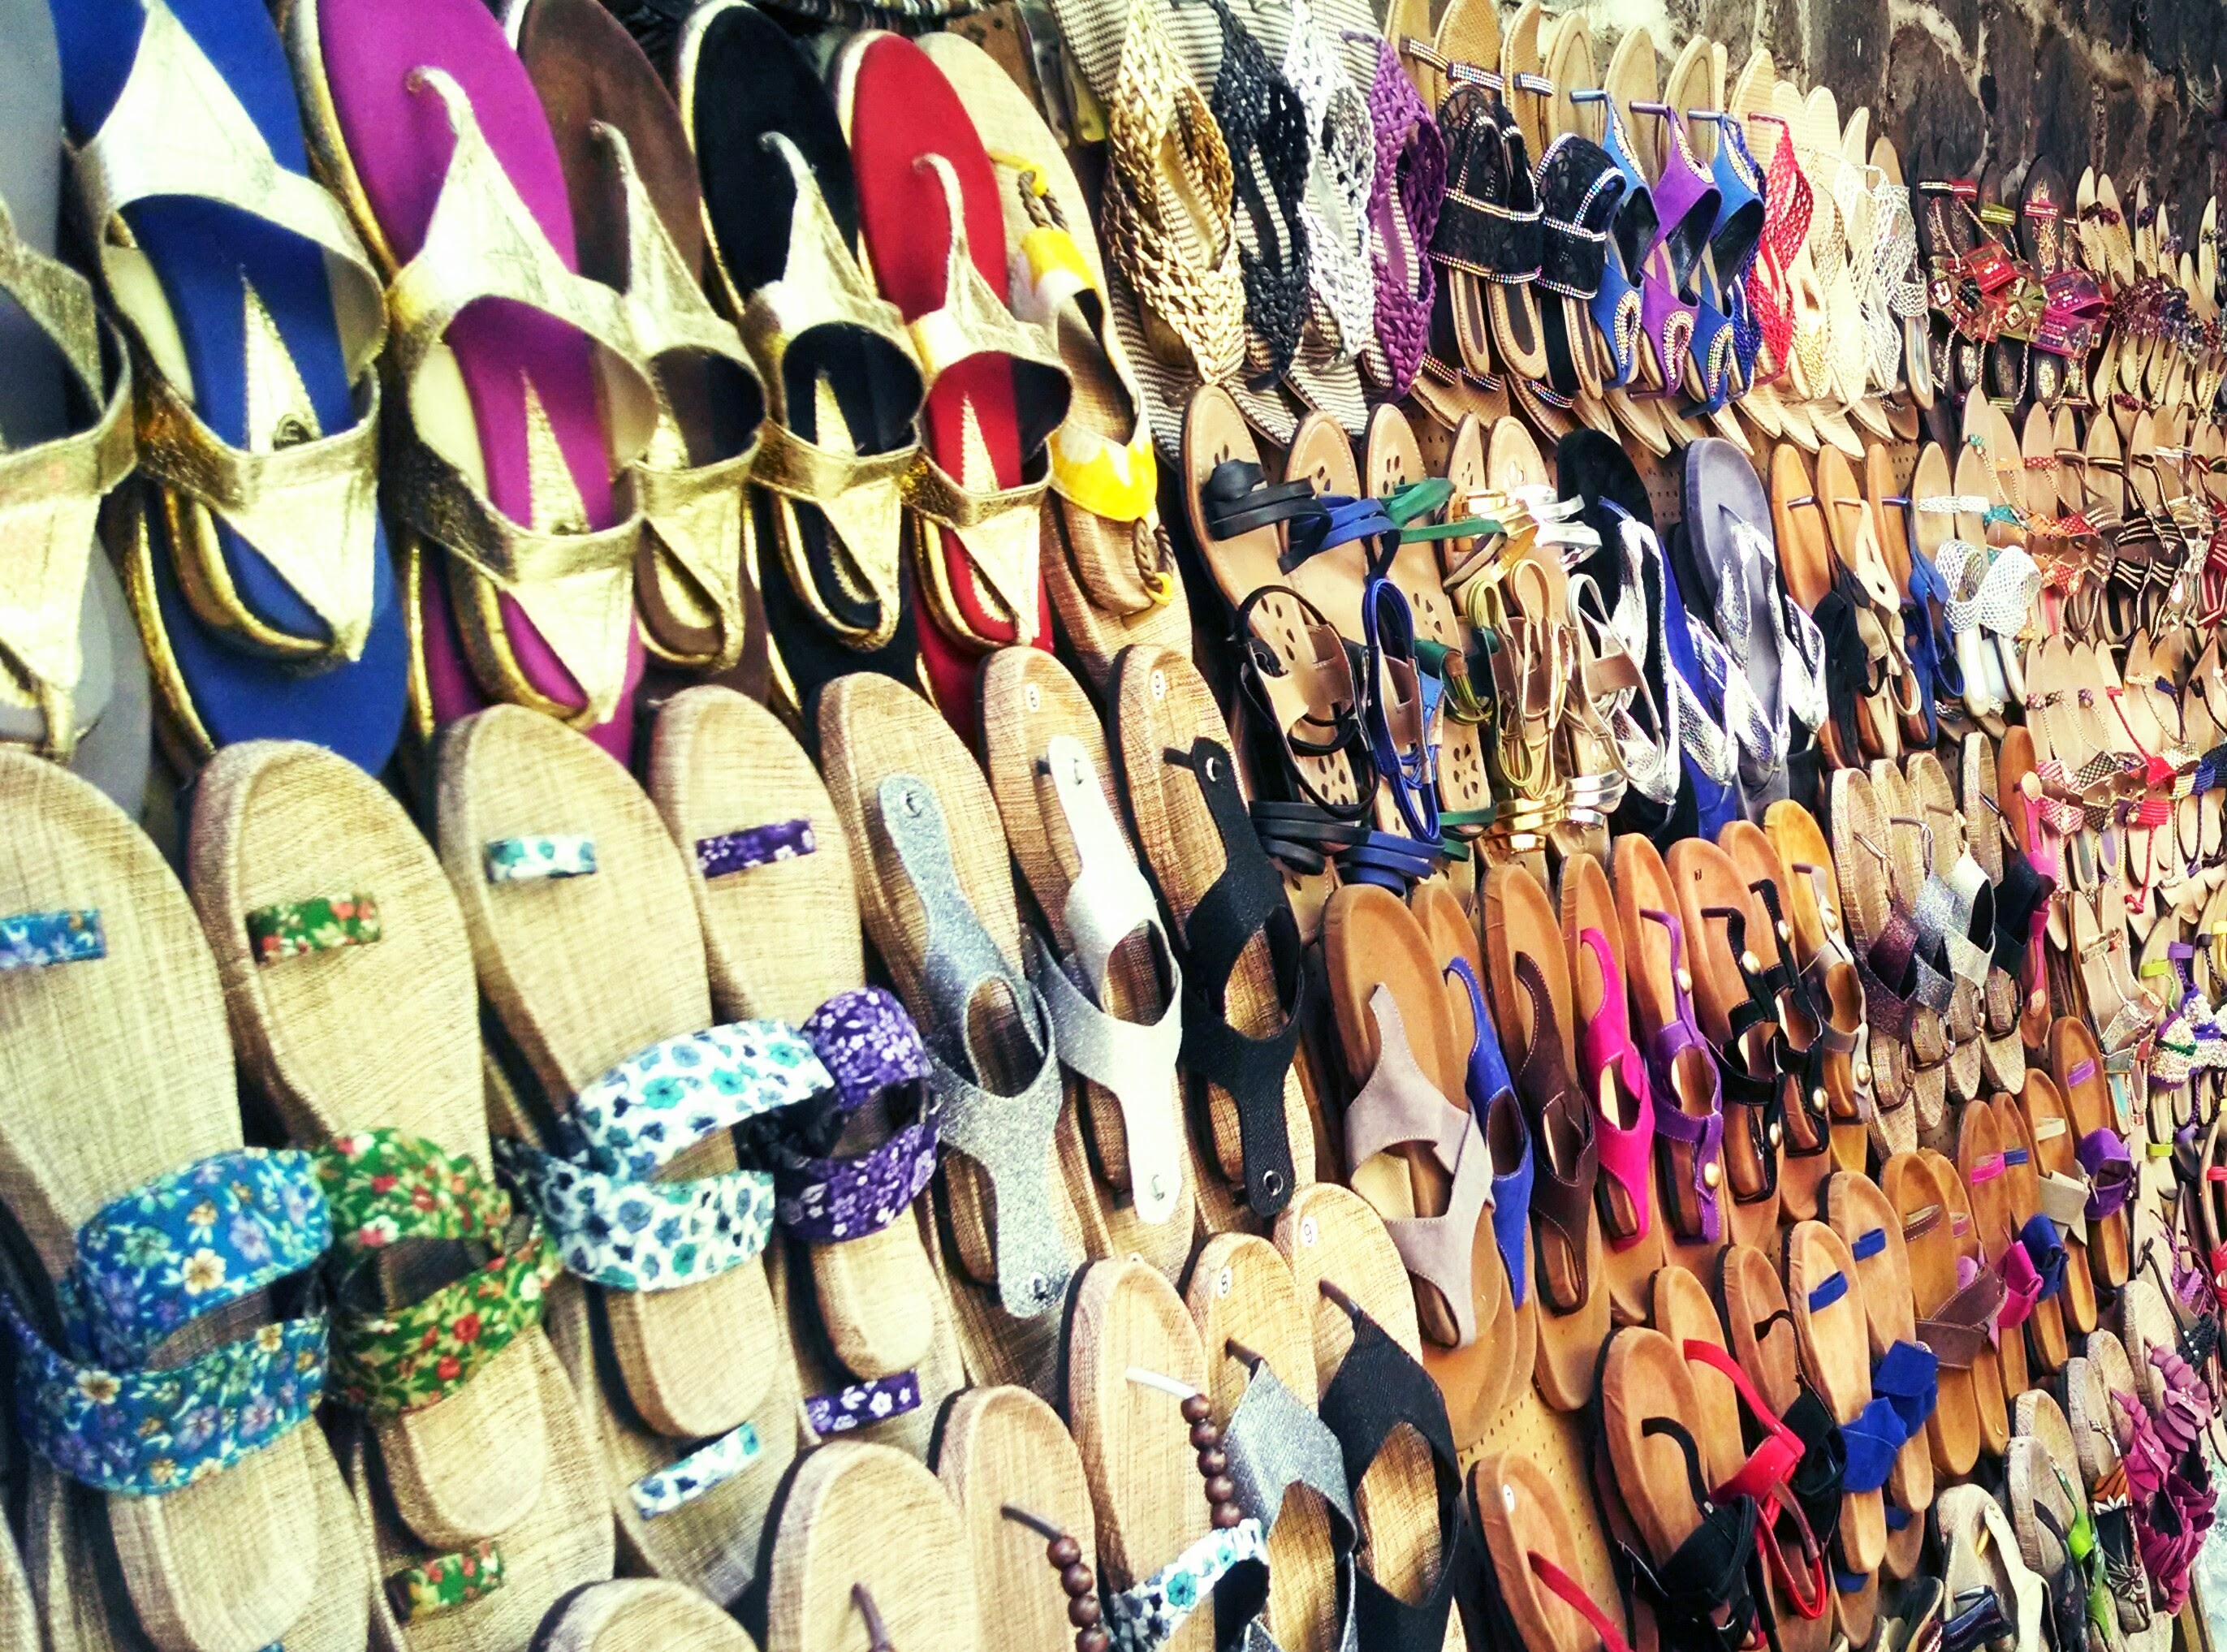 Pune loves street shopping. Don't miss the fun if you are traveling to Pune.